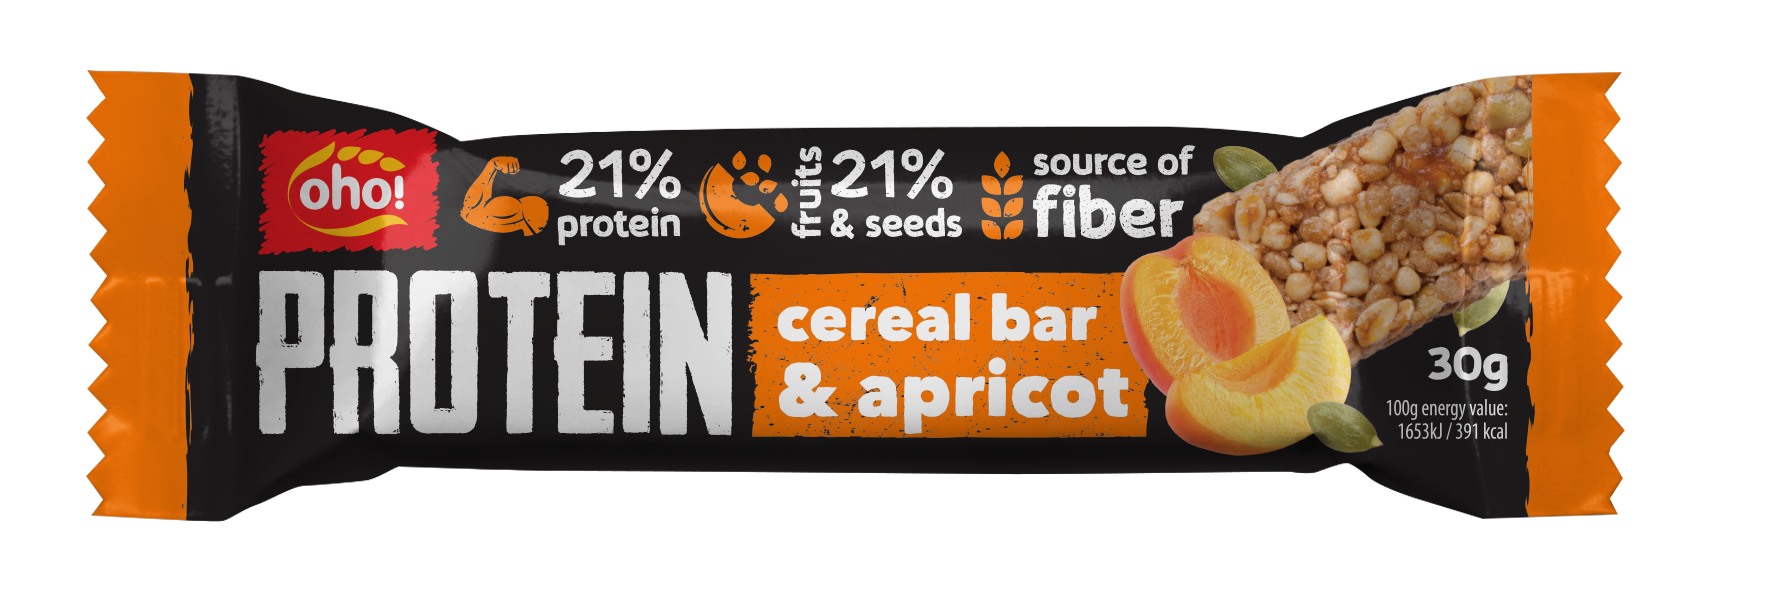 Crunchy protein bar with apricot pieces and pumpkin seeds